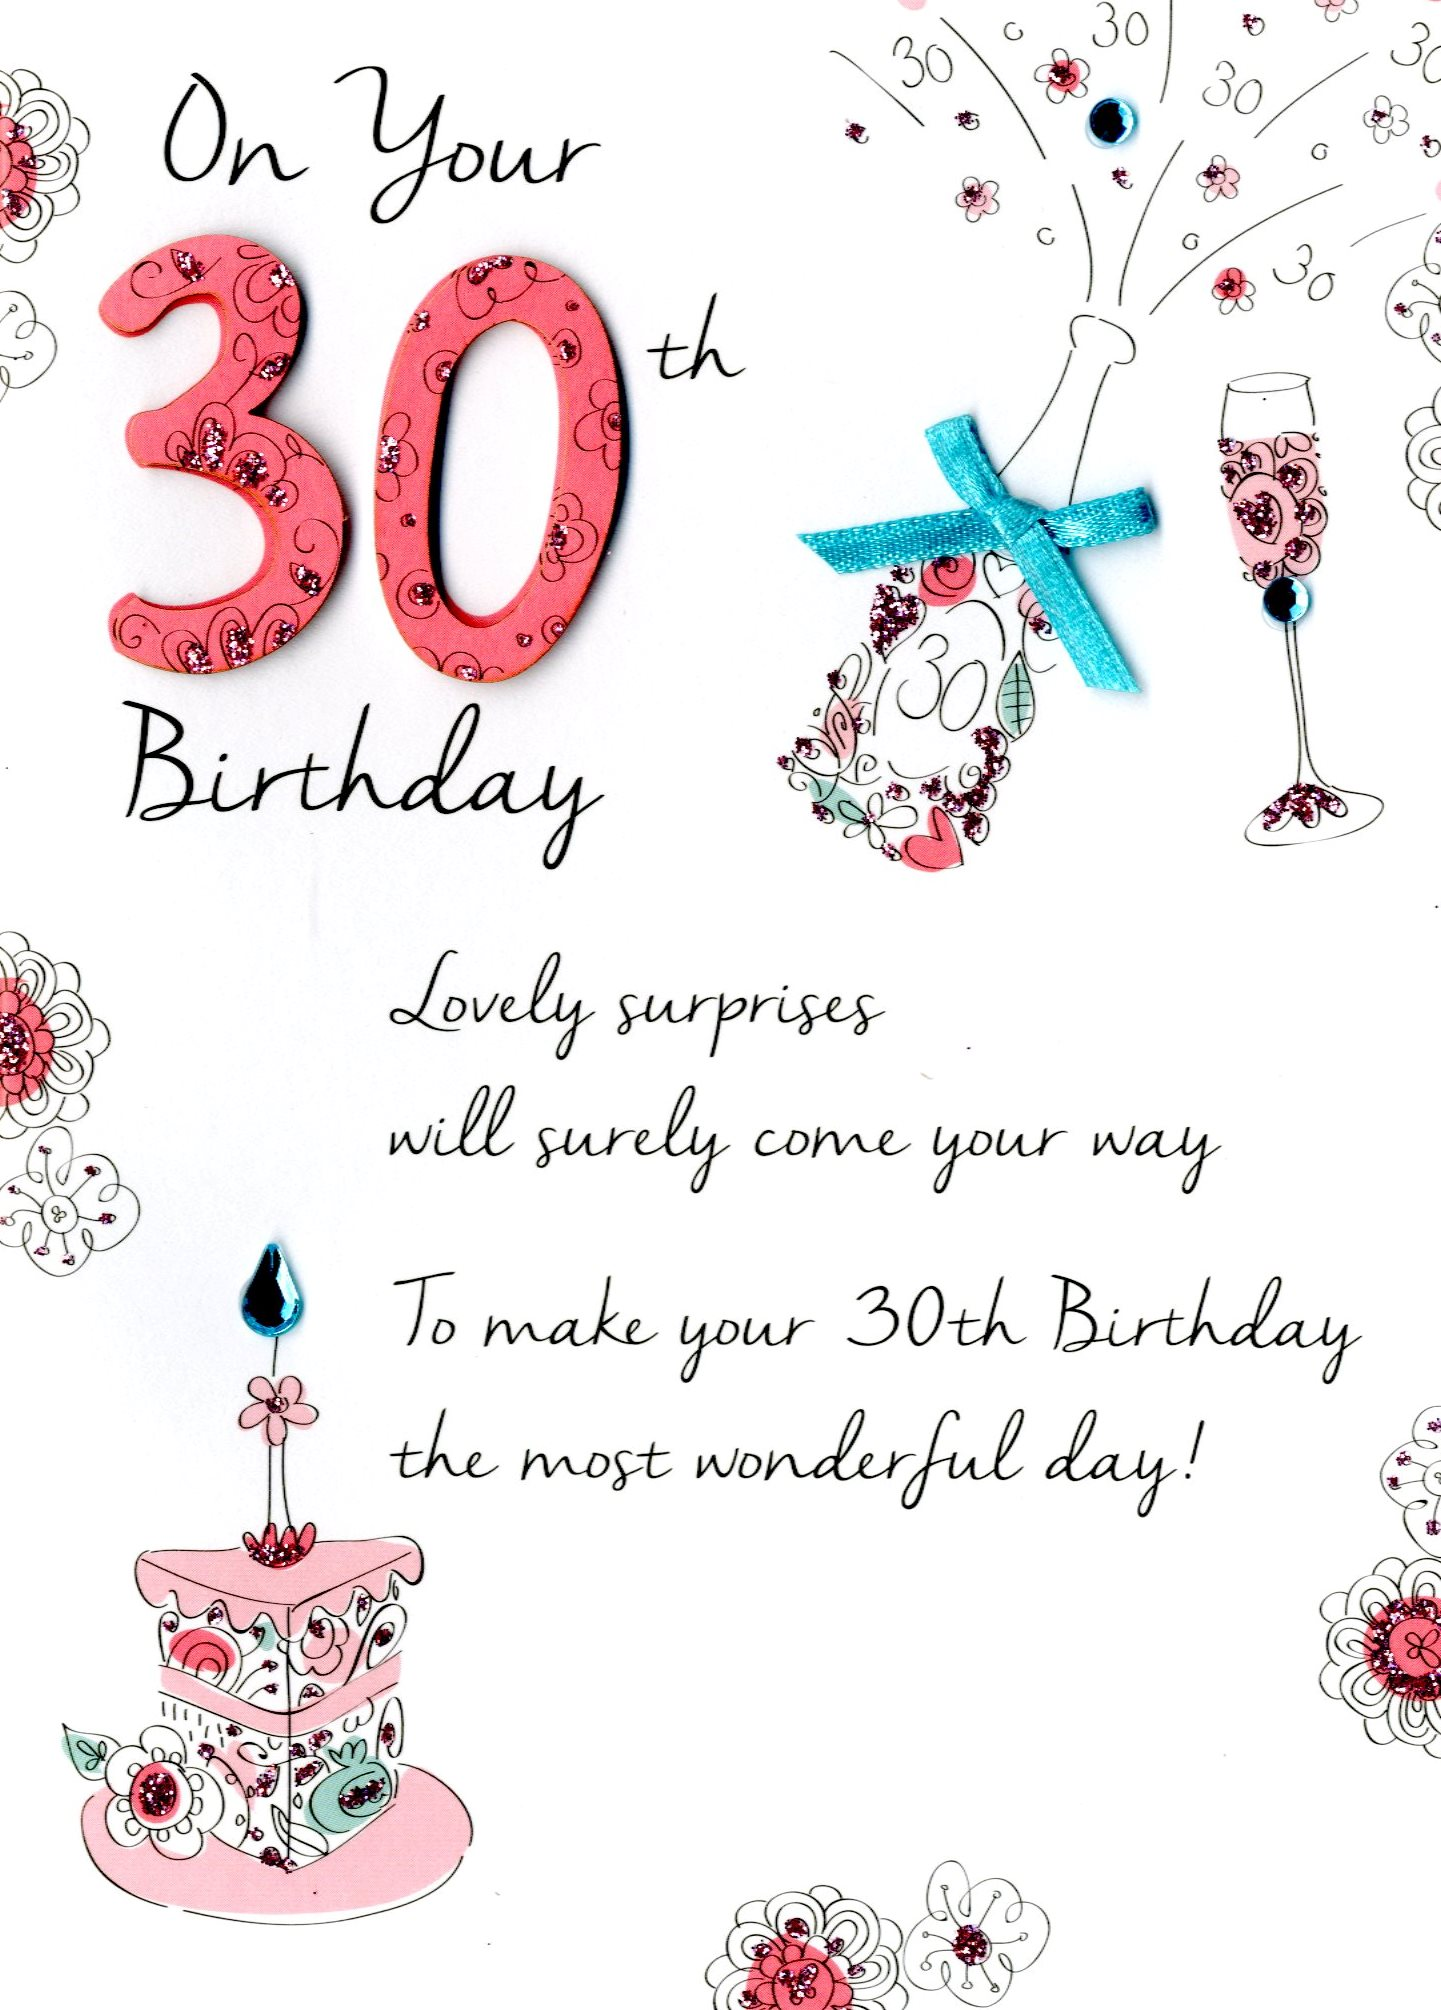 30th birthday greeting cards ; JT023